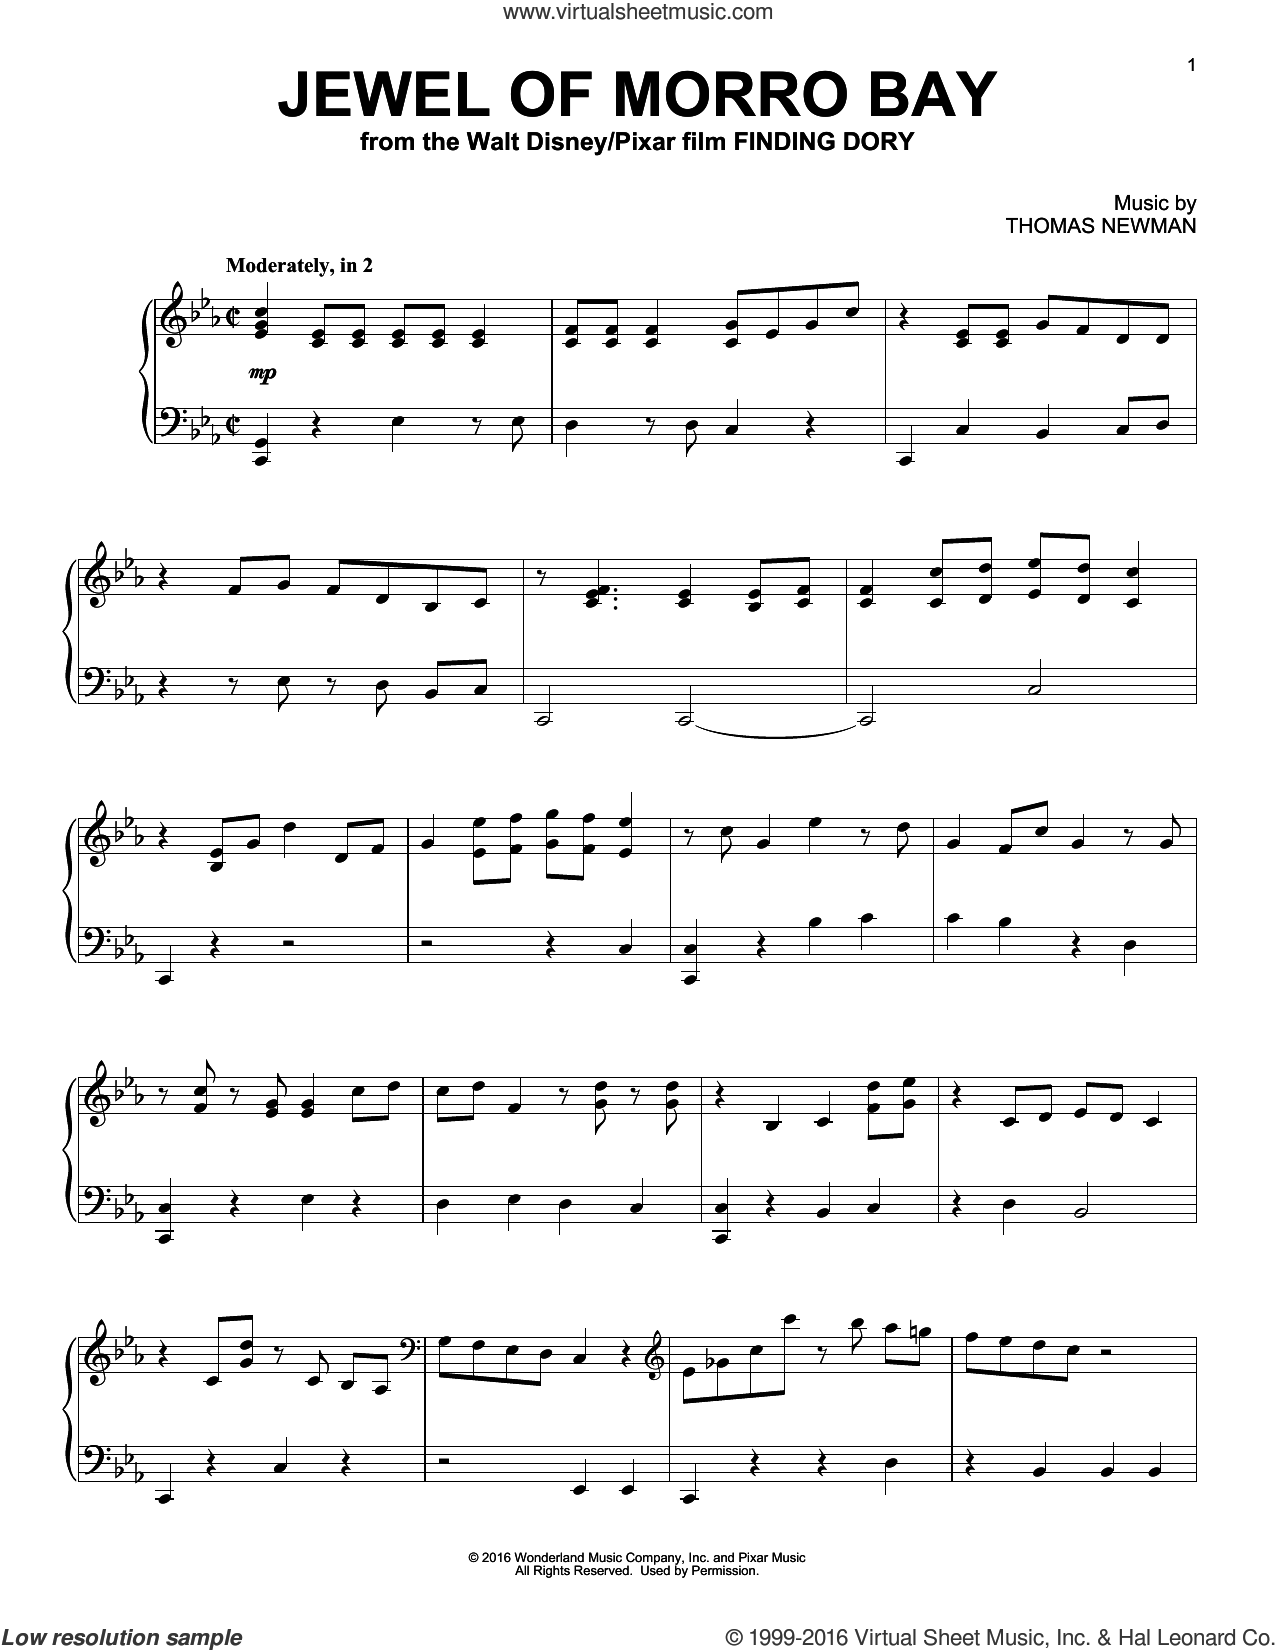 Jewel Of Morro Bay (from Finding Dory) sheet music for piano solo by Thomas Newman, intermediate skill level